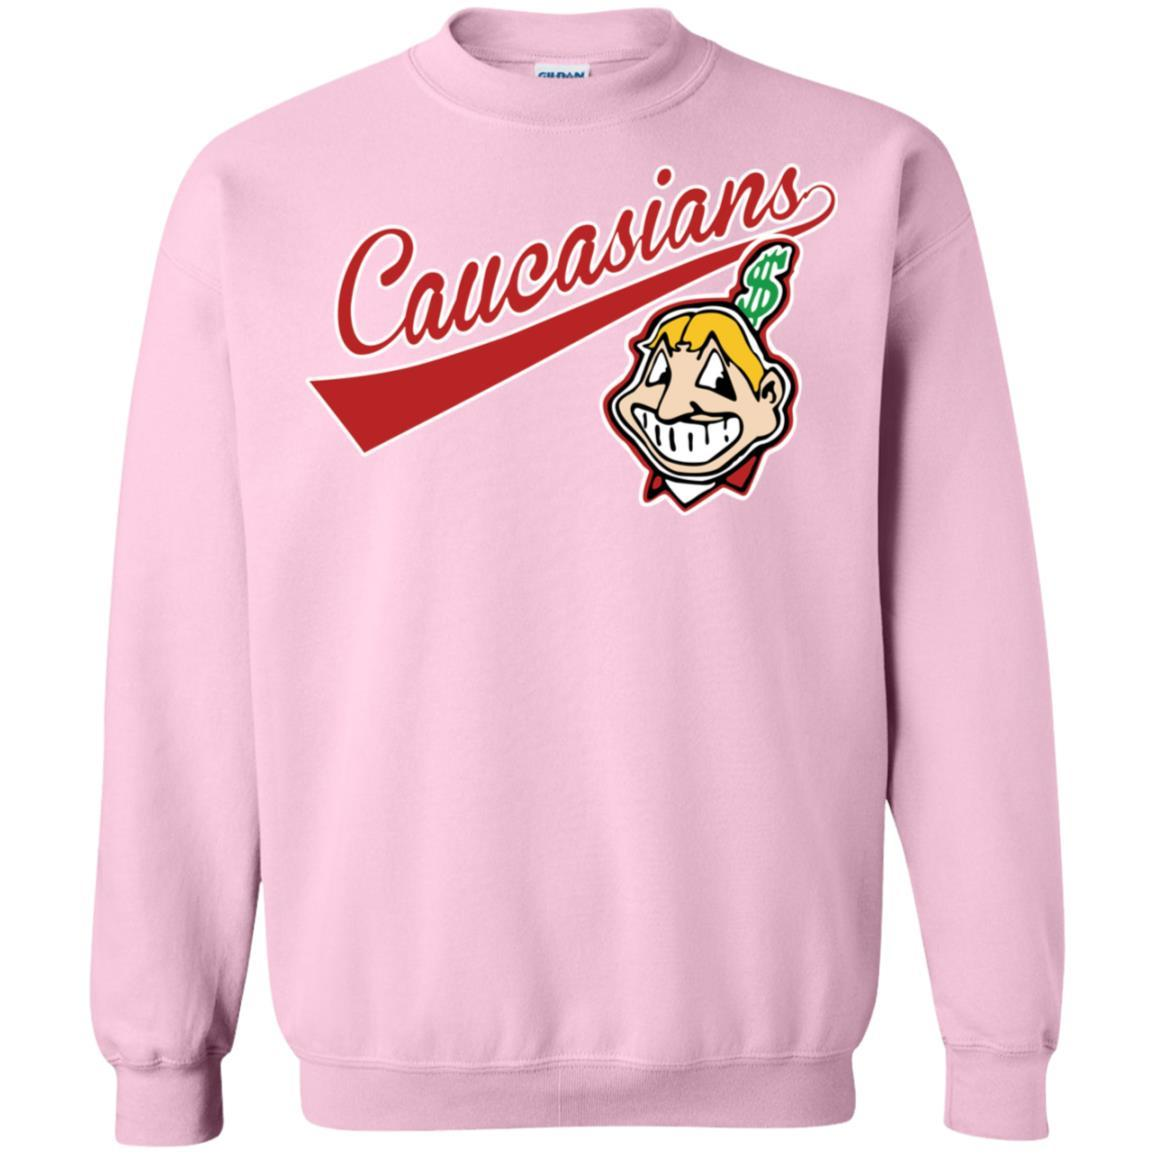 Cleveland Caucasians Native Go Indians - Pullover Sweatshirt Light Pink / 5XL